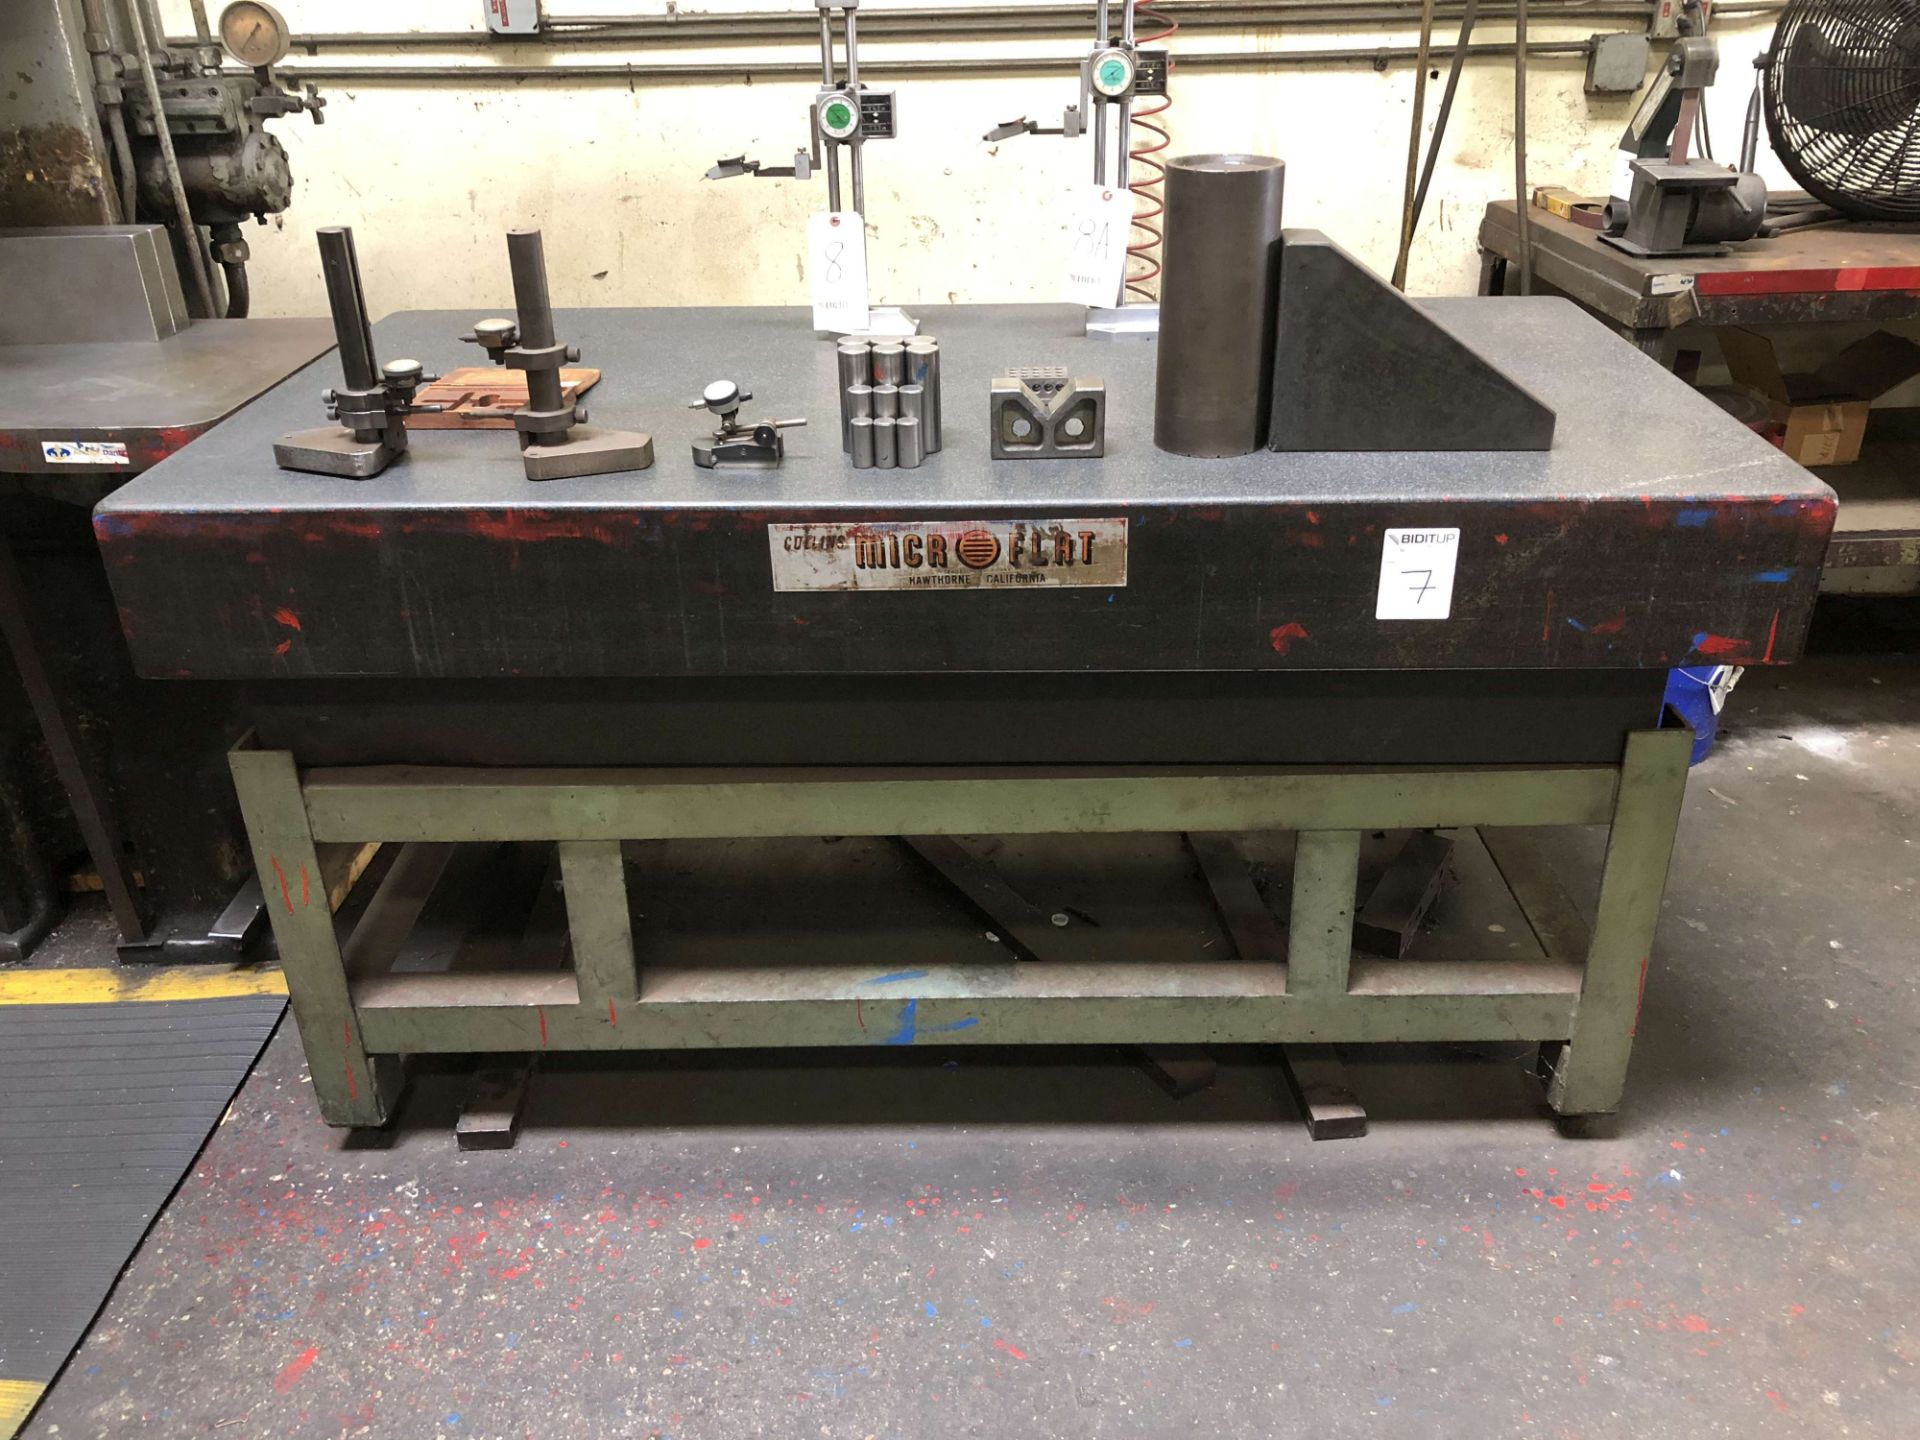 """Lot 7 - Collins Microflat Granite Surface Plate (3' x 6' x 8"""" Thick) w/ Stand; Comes w/ Various Inspection"""